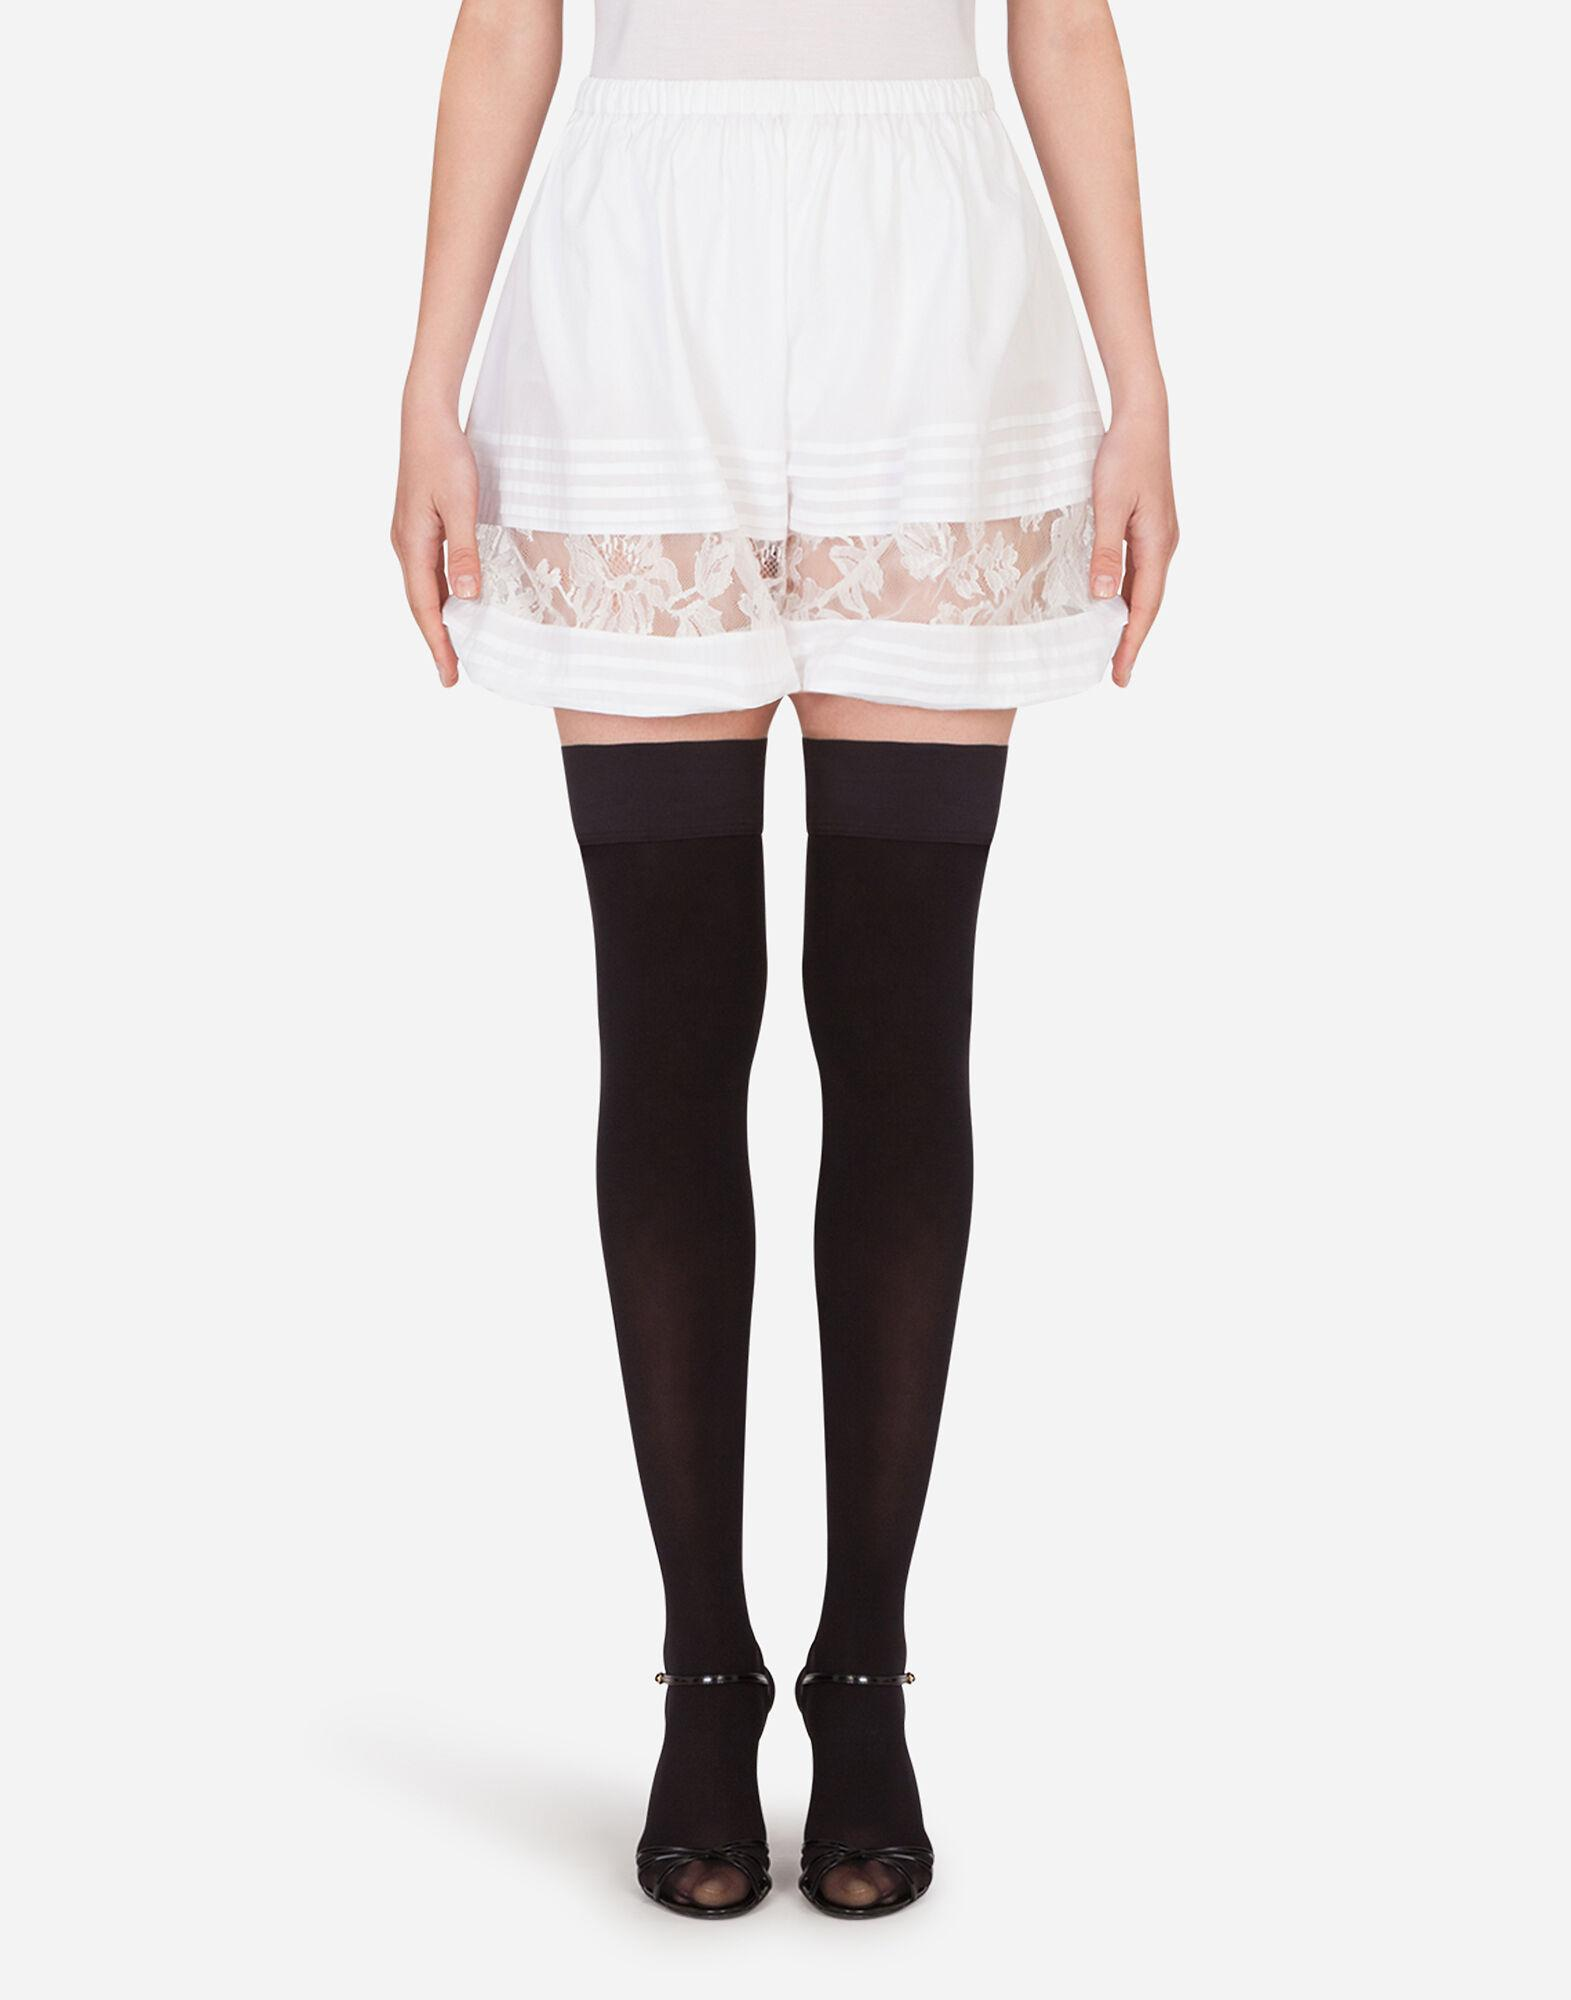 Silk shorts with lace details